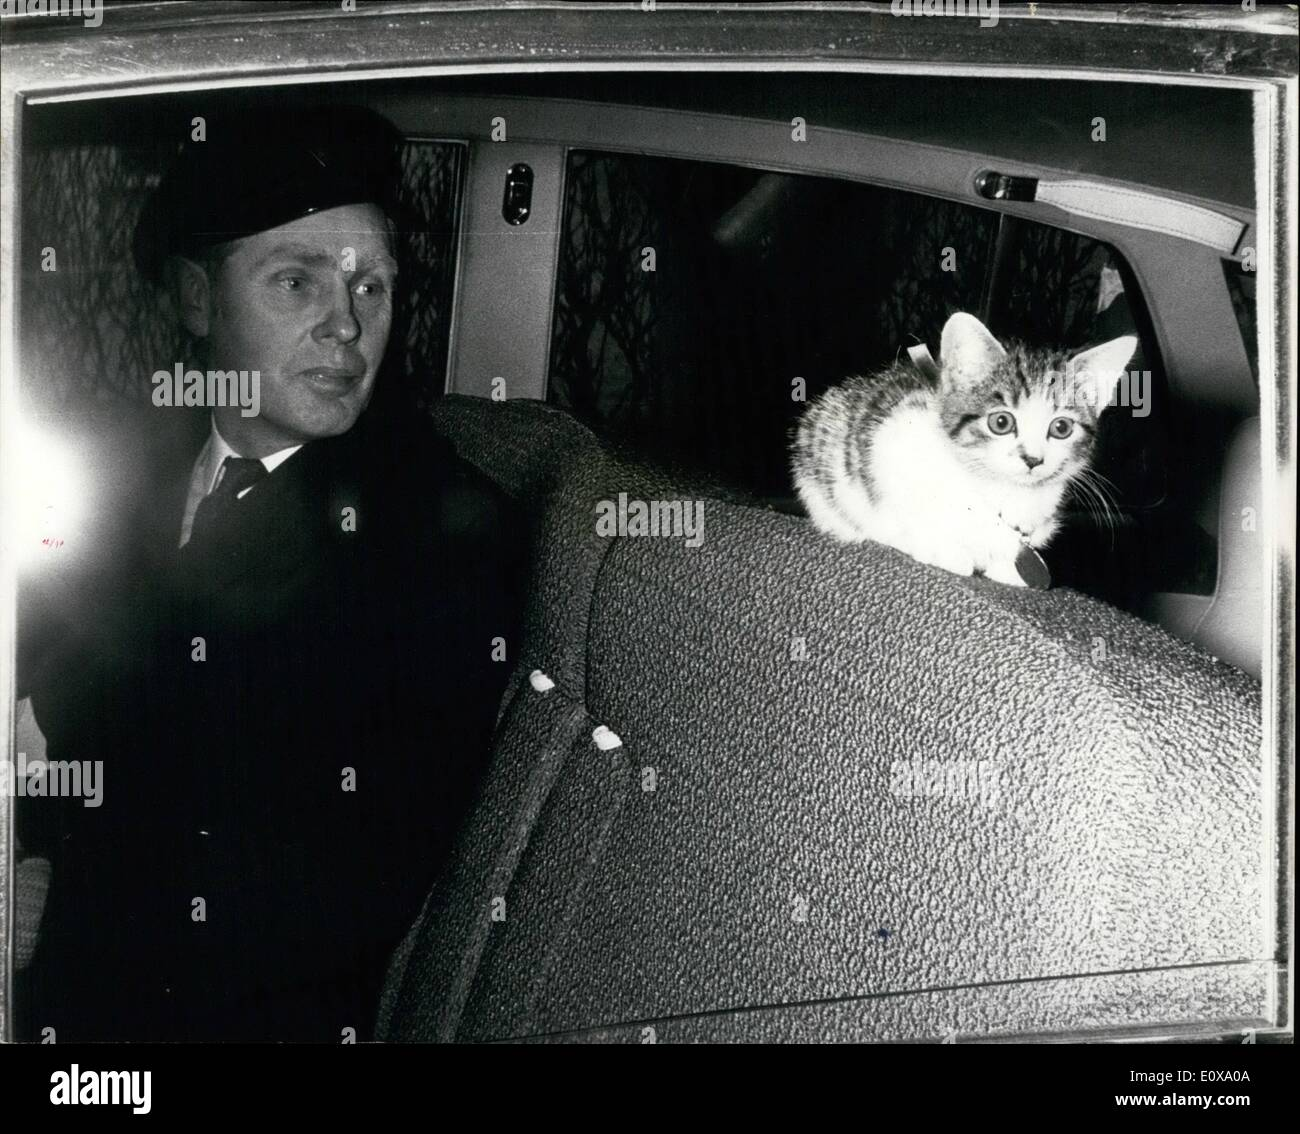 Dec. 12, 1965 - Holly The Kitten Goes To Her New Home By Rolls. Holly the kitten was pushed through the letter box of the letter box of the Canine Defence League's headquarters in London. Around her neck was a 10s. note and a letter asking the league to find her a good home. The league was inundated with offers for her. They decided to give the kitten to Mr. Reginald Kilby and his wife, Patricia, who live at Amersham, Bucks. Holly was taken to her new home by Rolls Royce - Stock Image